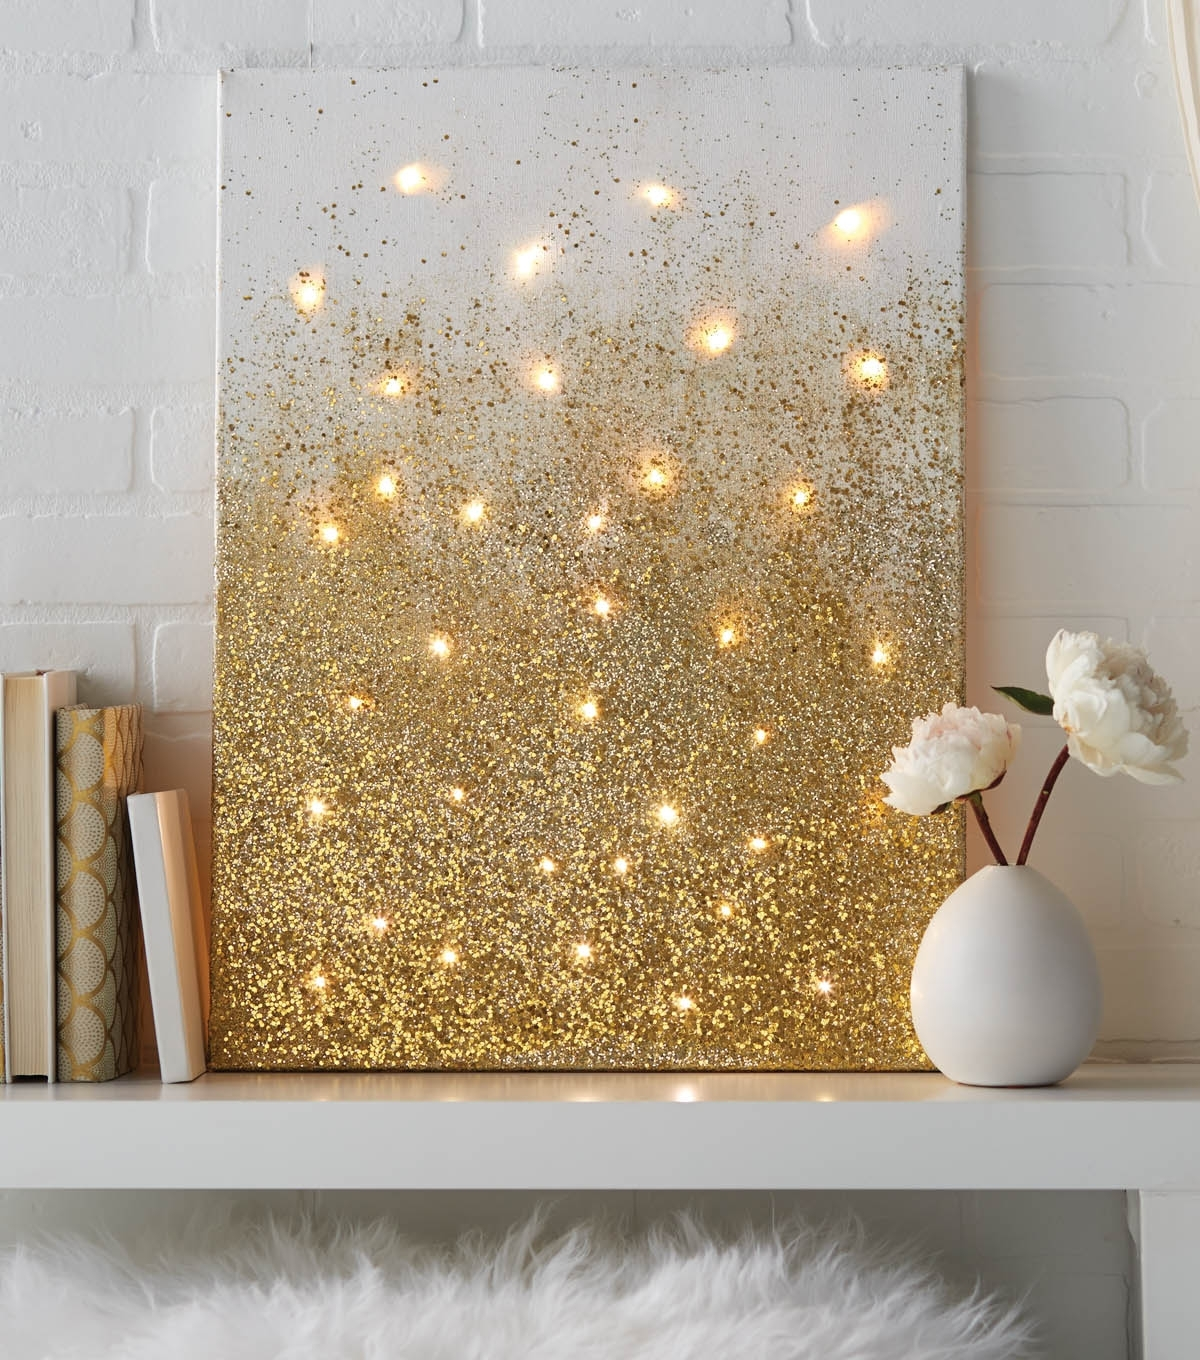 Glitter And Lights Canvas | Joann With Regard To 2018 Joann Fabric Wall Art (View 12 of 15)